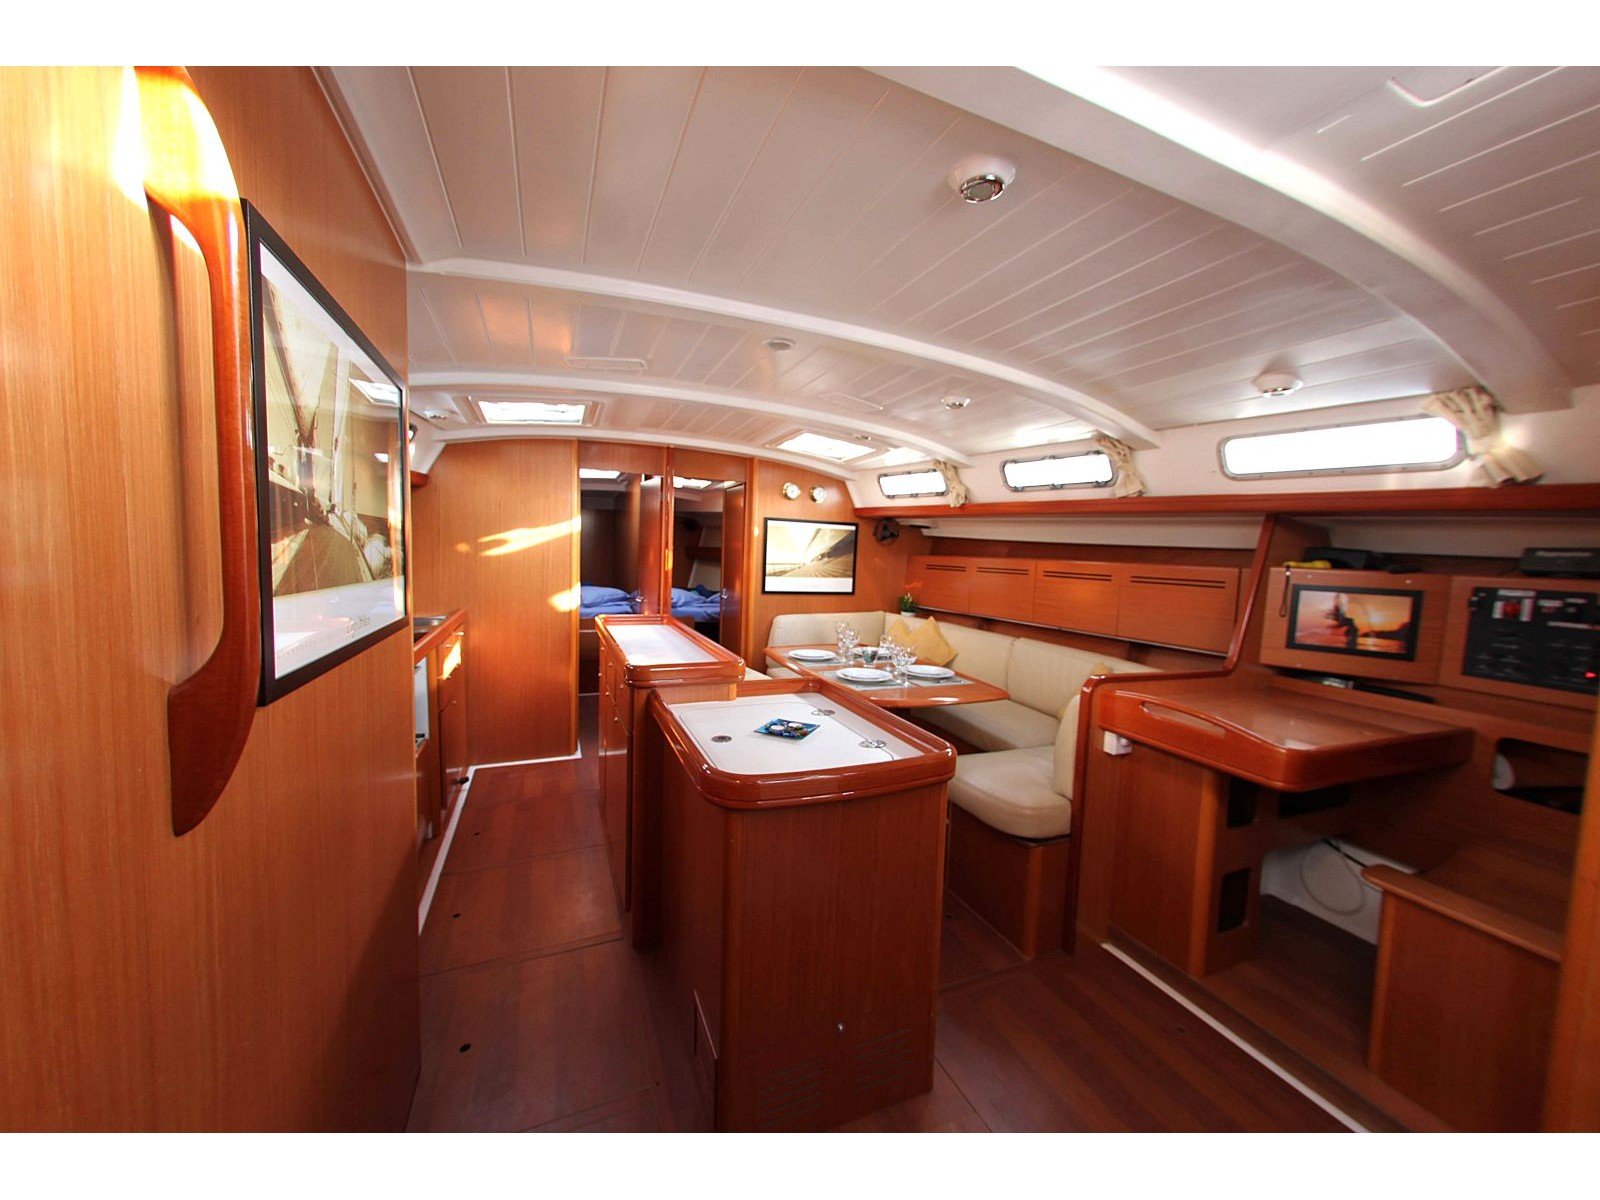 Cyclades 50.5 (Roulette - (A/C - Generator - Refit 2020)) Interior image - 4